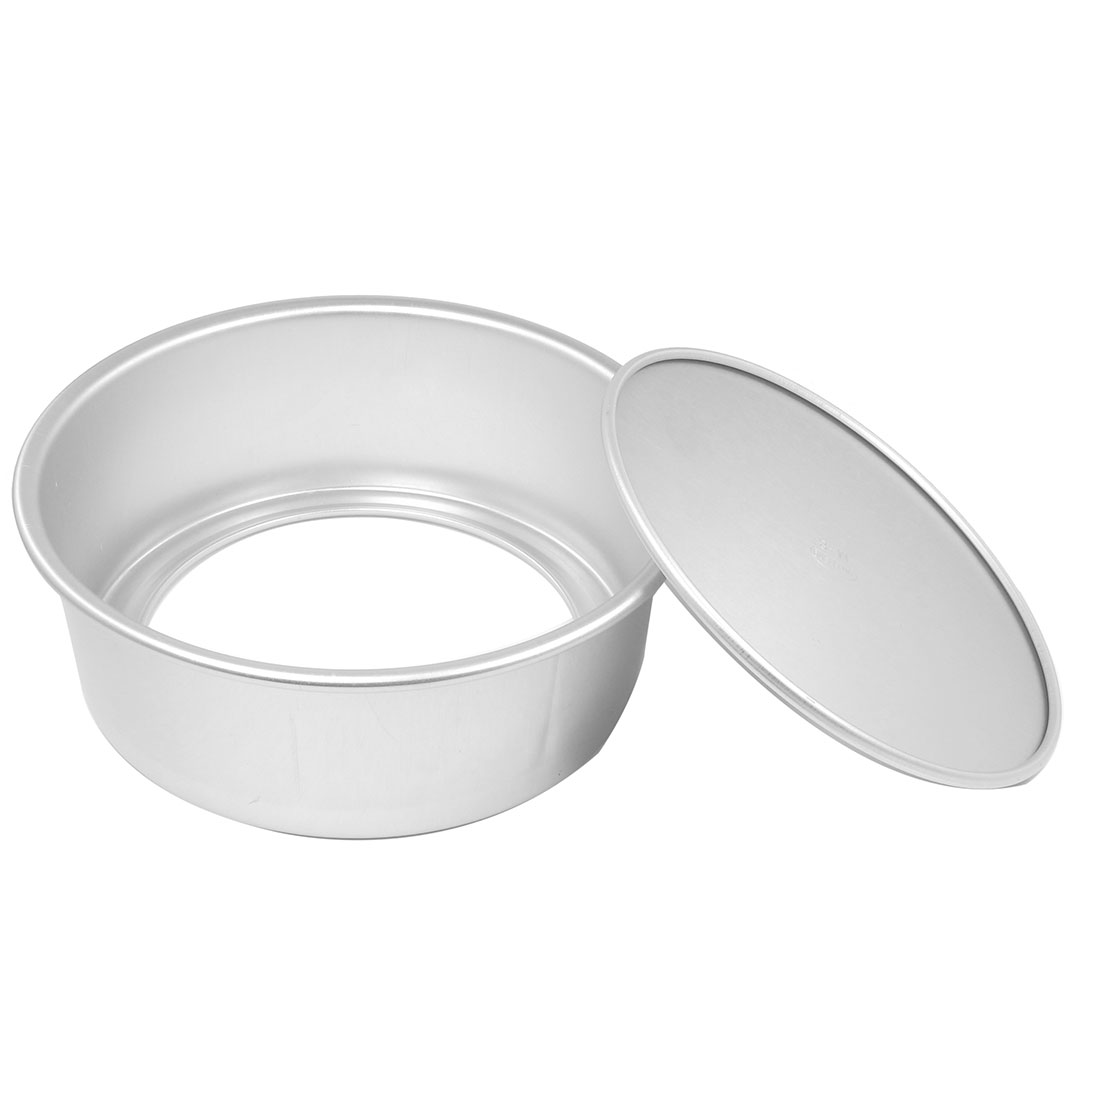 "3.1"" Height Round Aluminum Alloy Bottom Removable Nonstick Cake Mold Mould Pot"